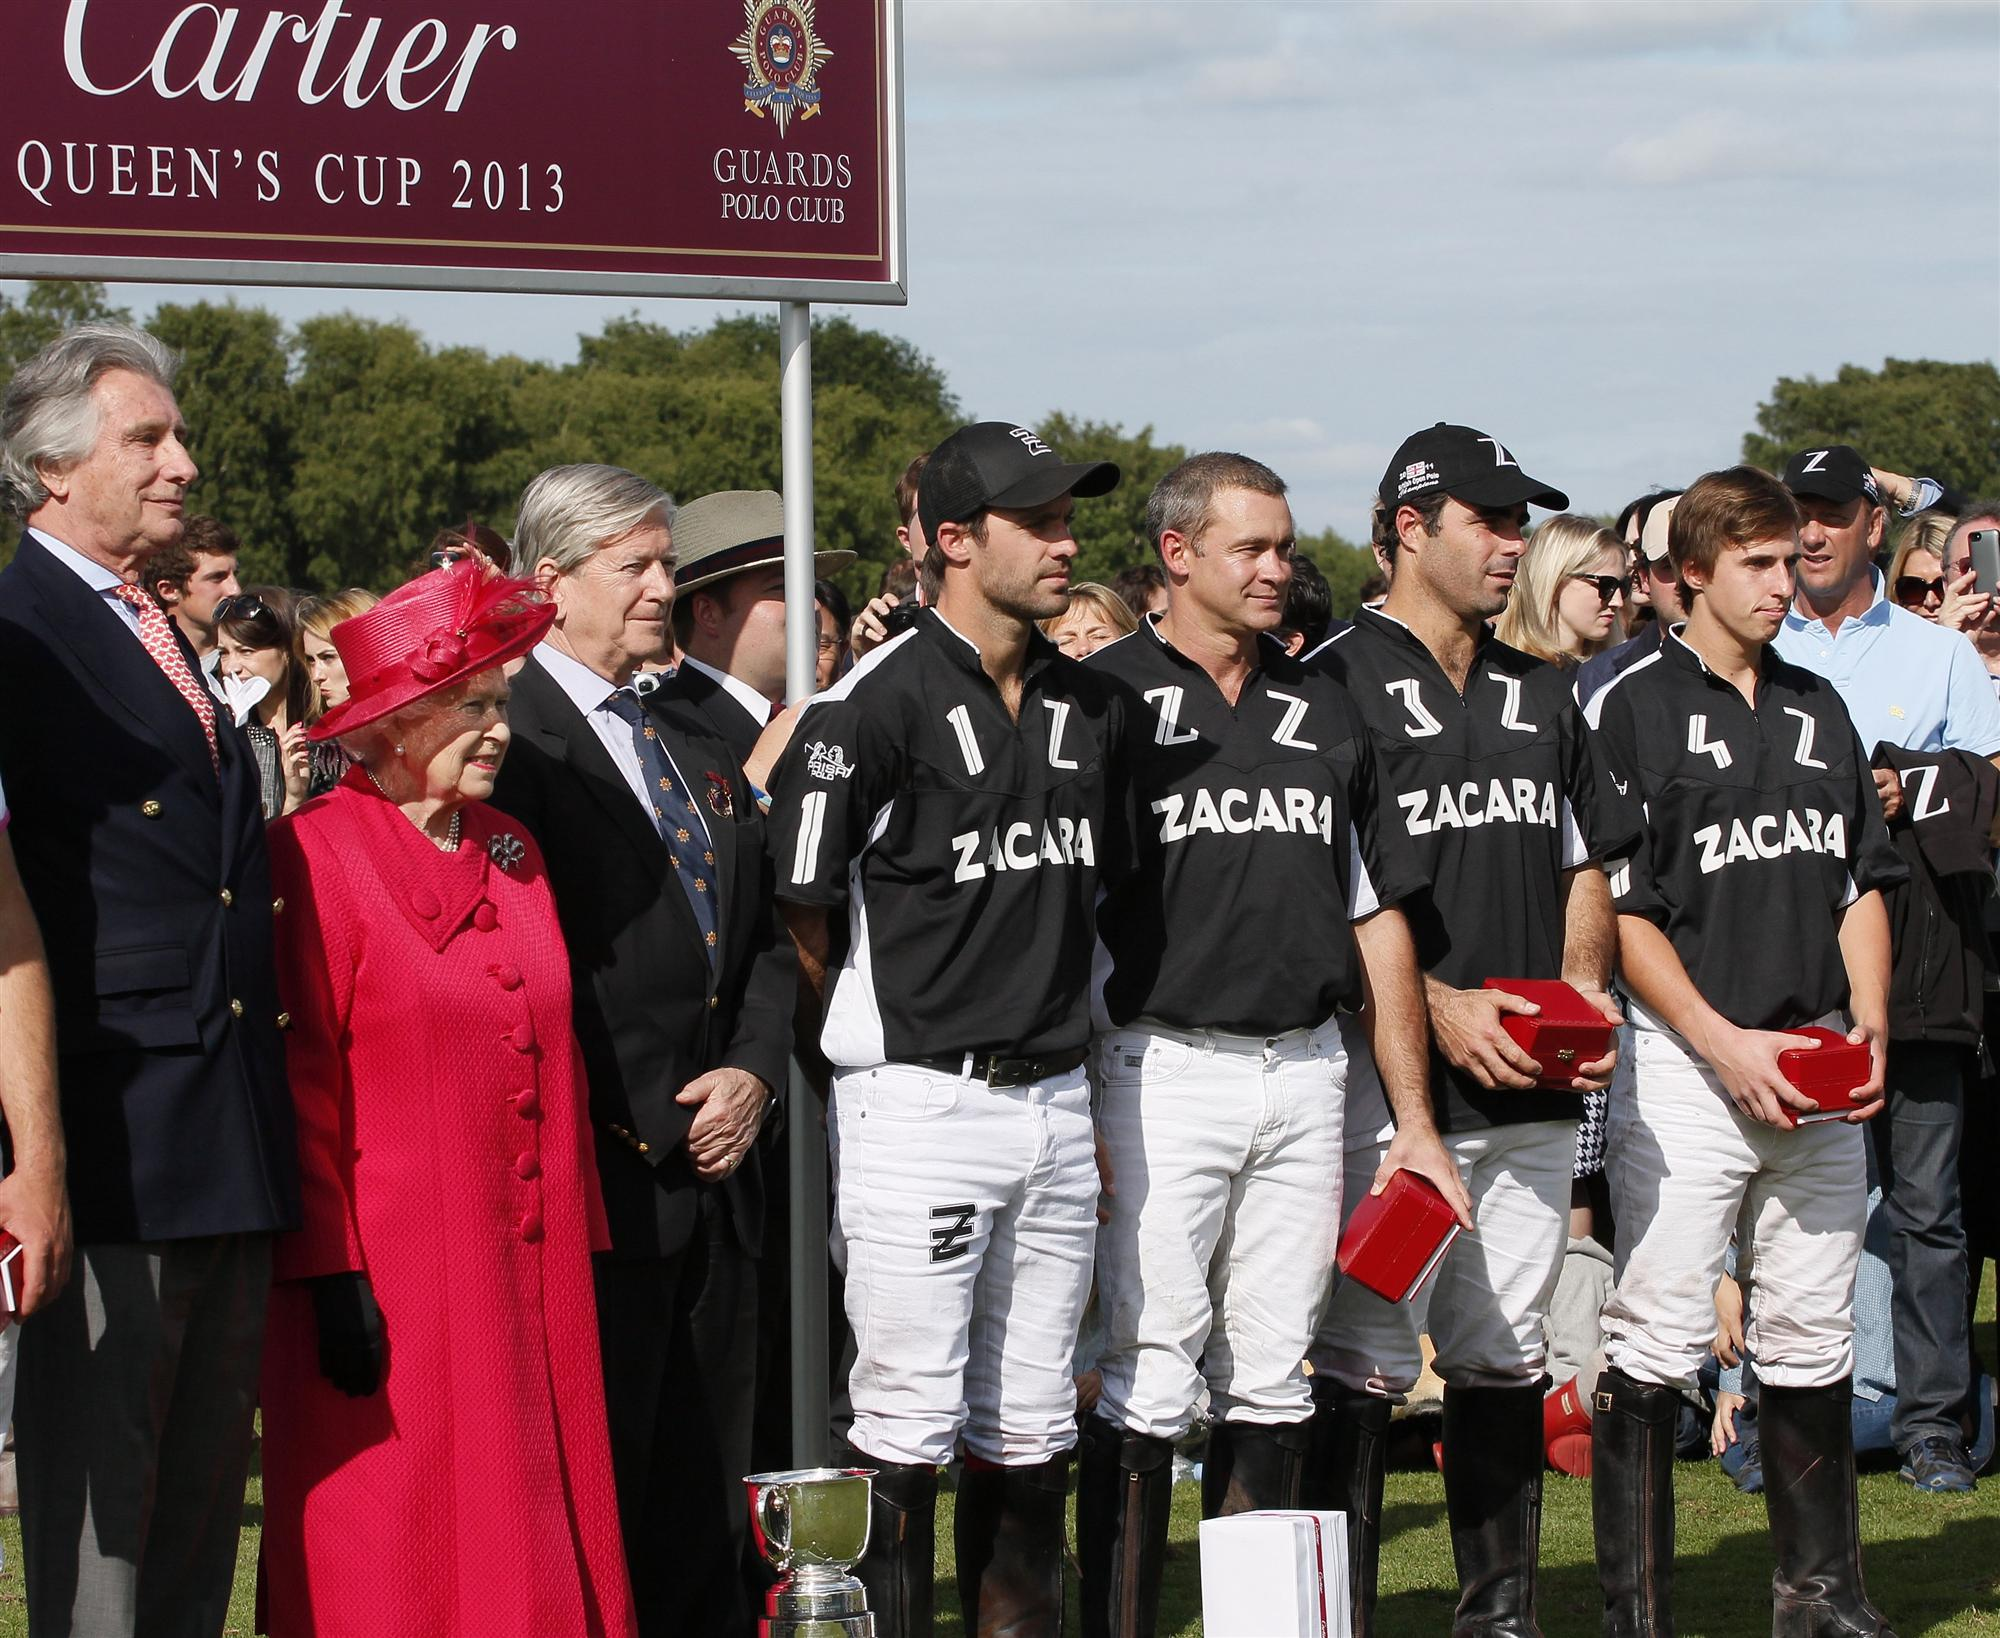 16 After US Open a new title for Zacara 2013 Cartier Queens Cup